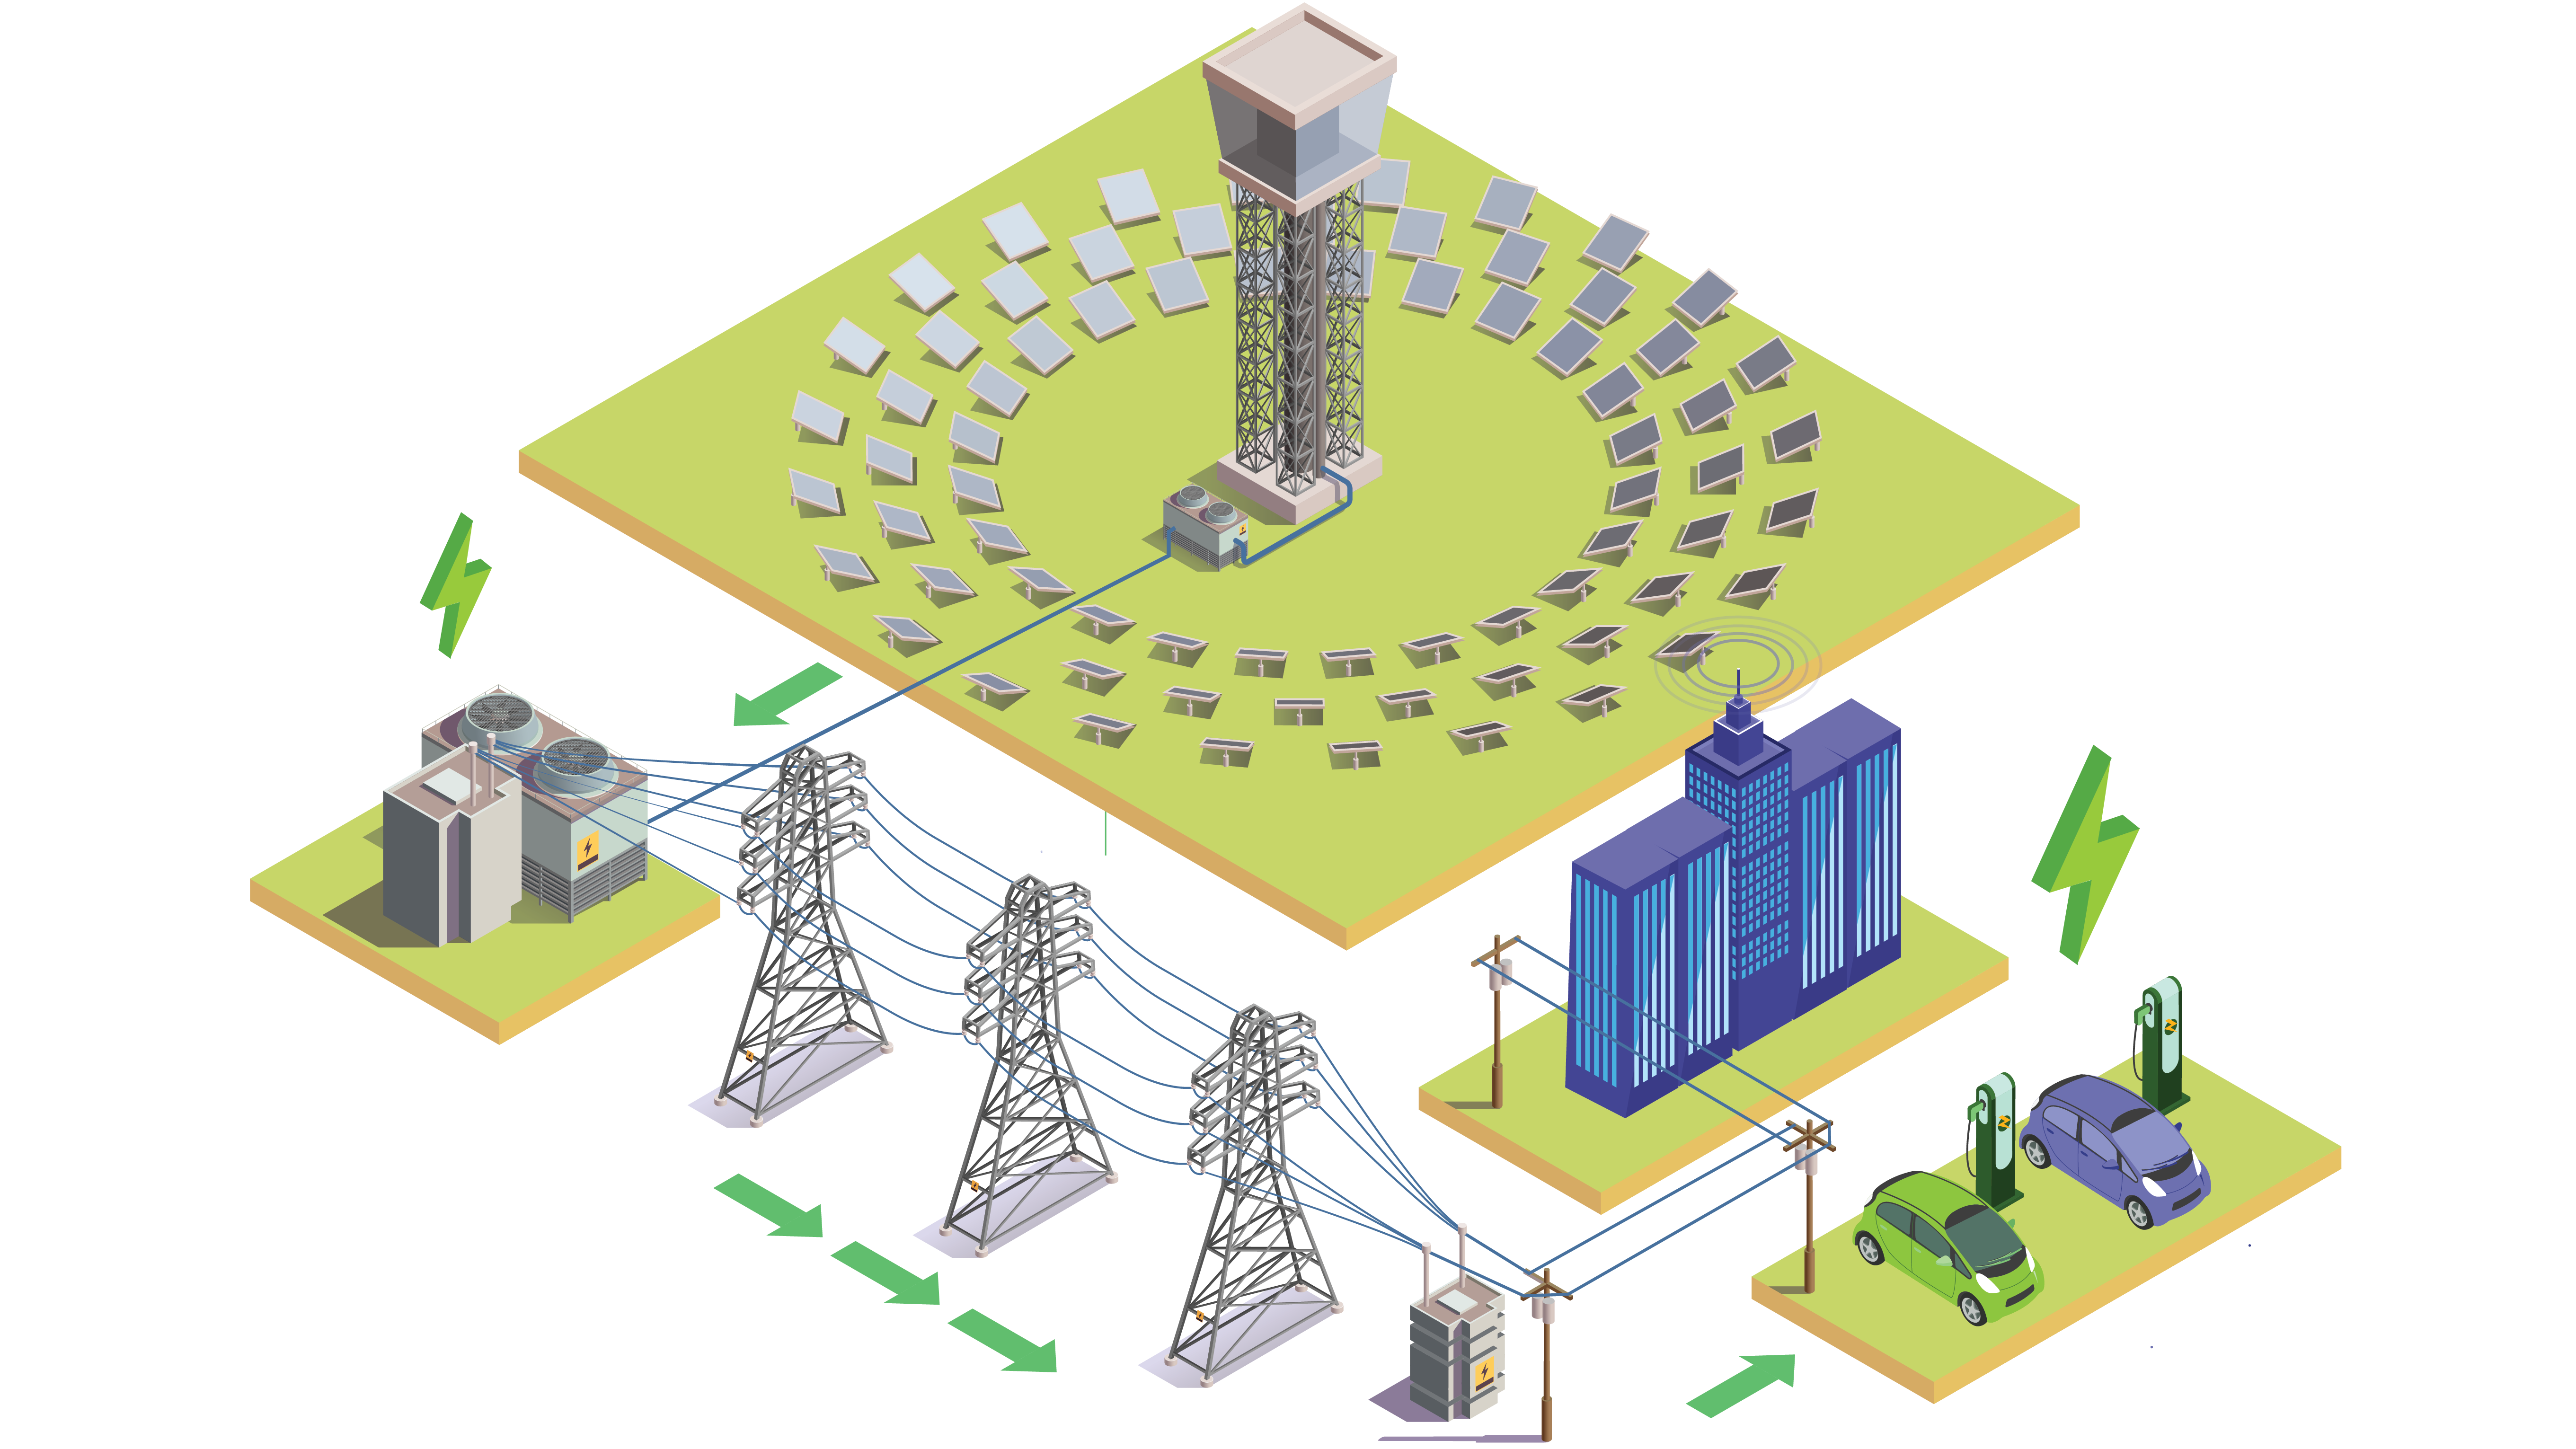 resync microgrids overview